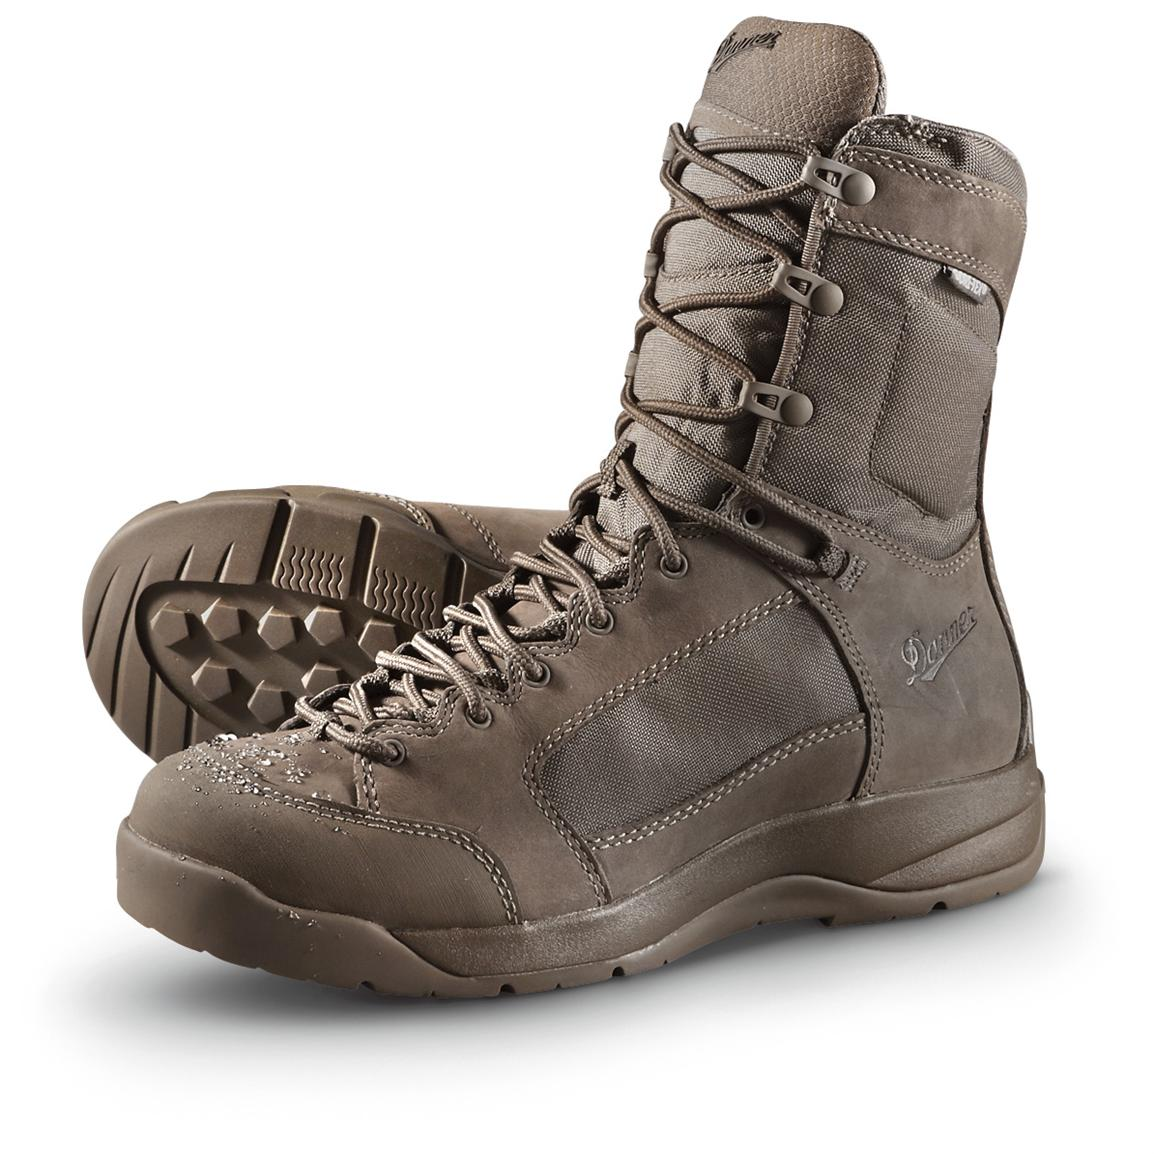 New Danner Boots tbQb0w3H